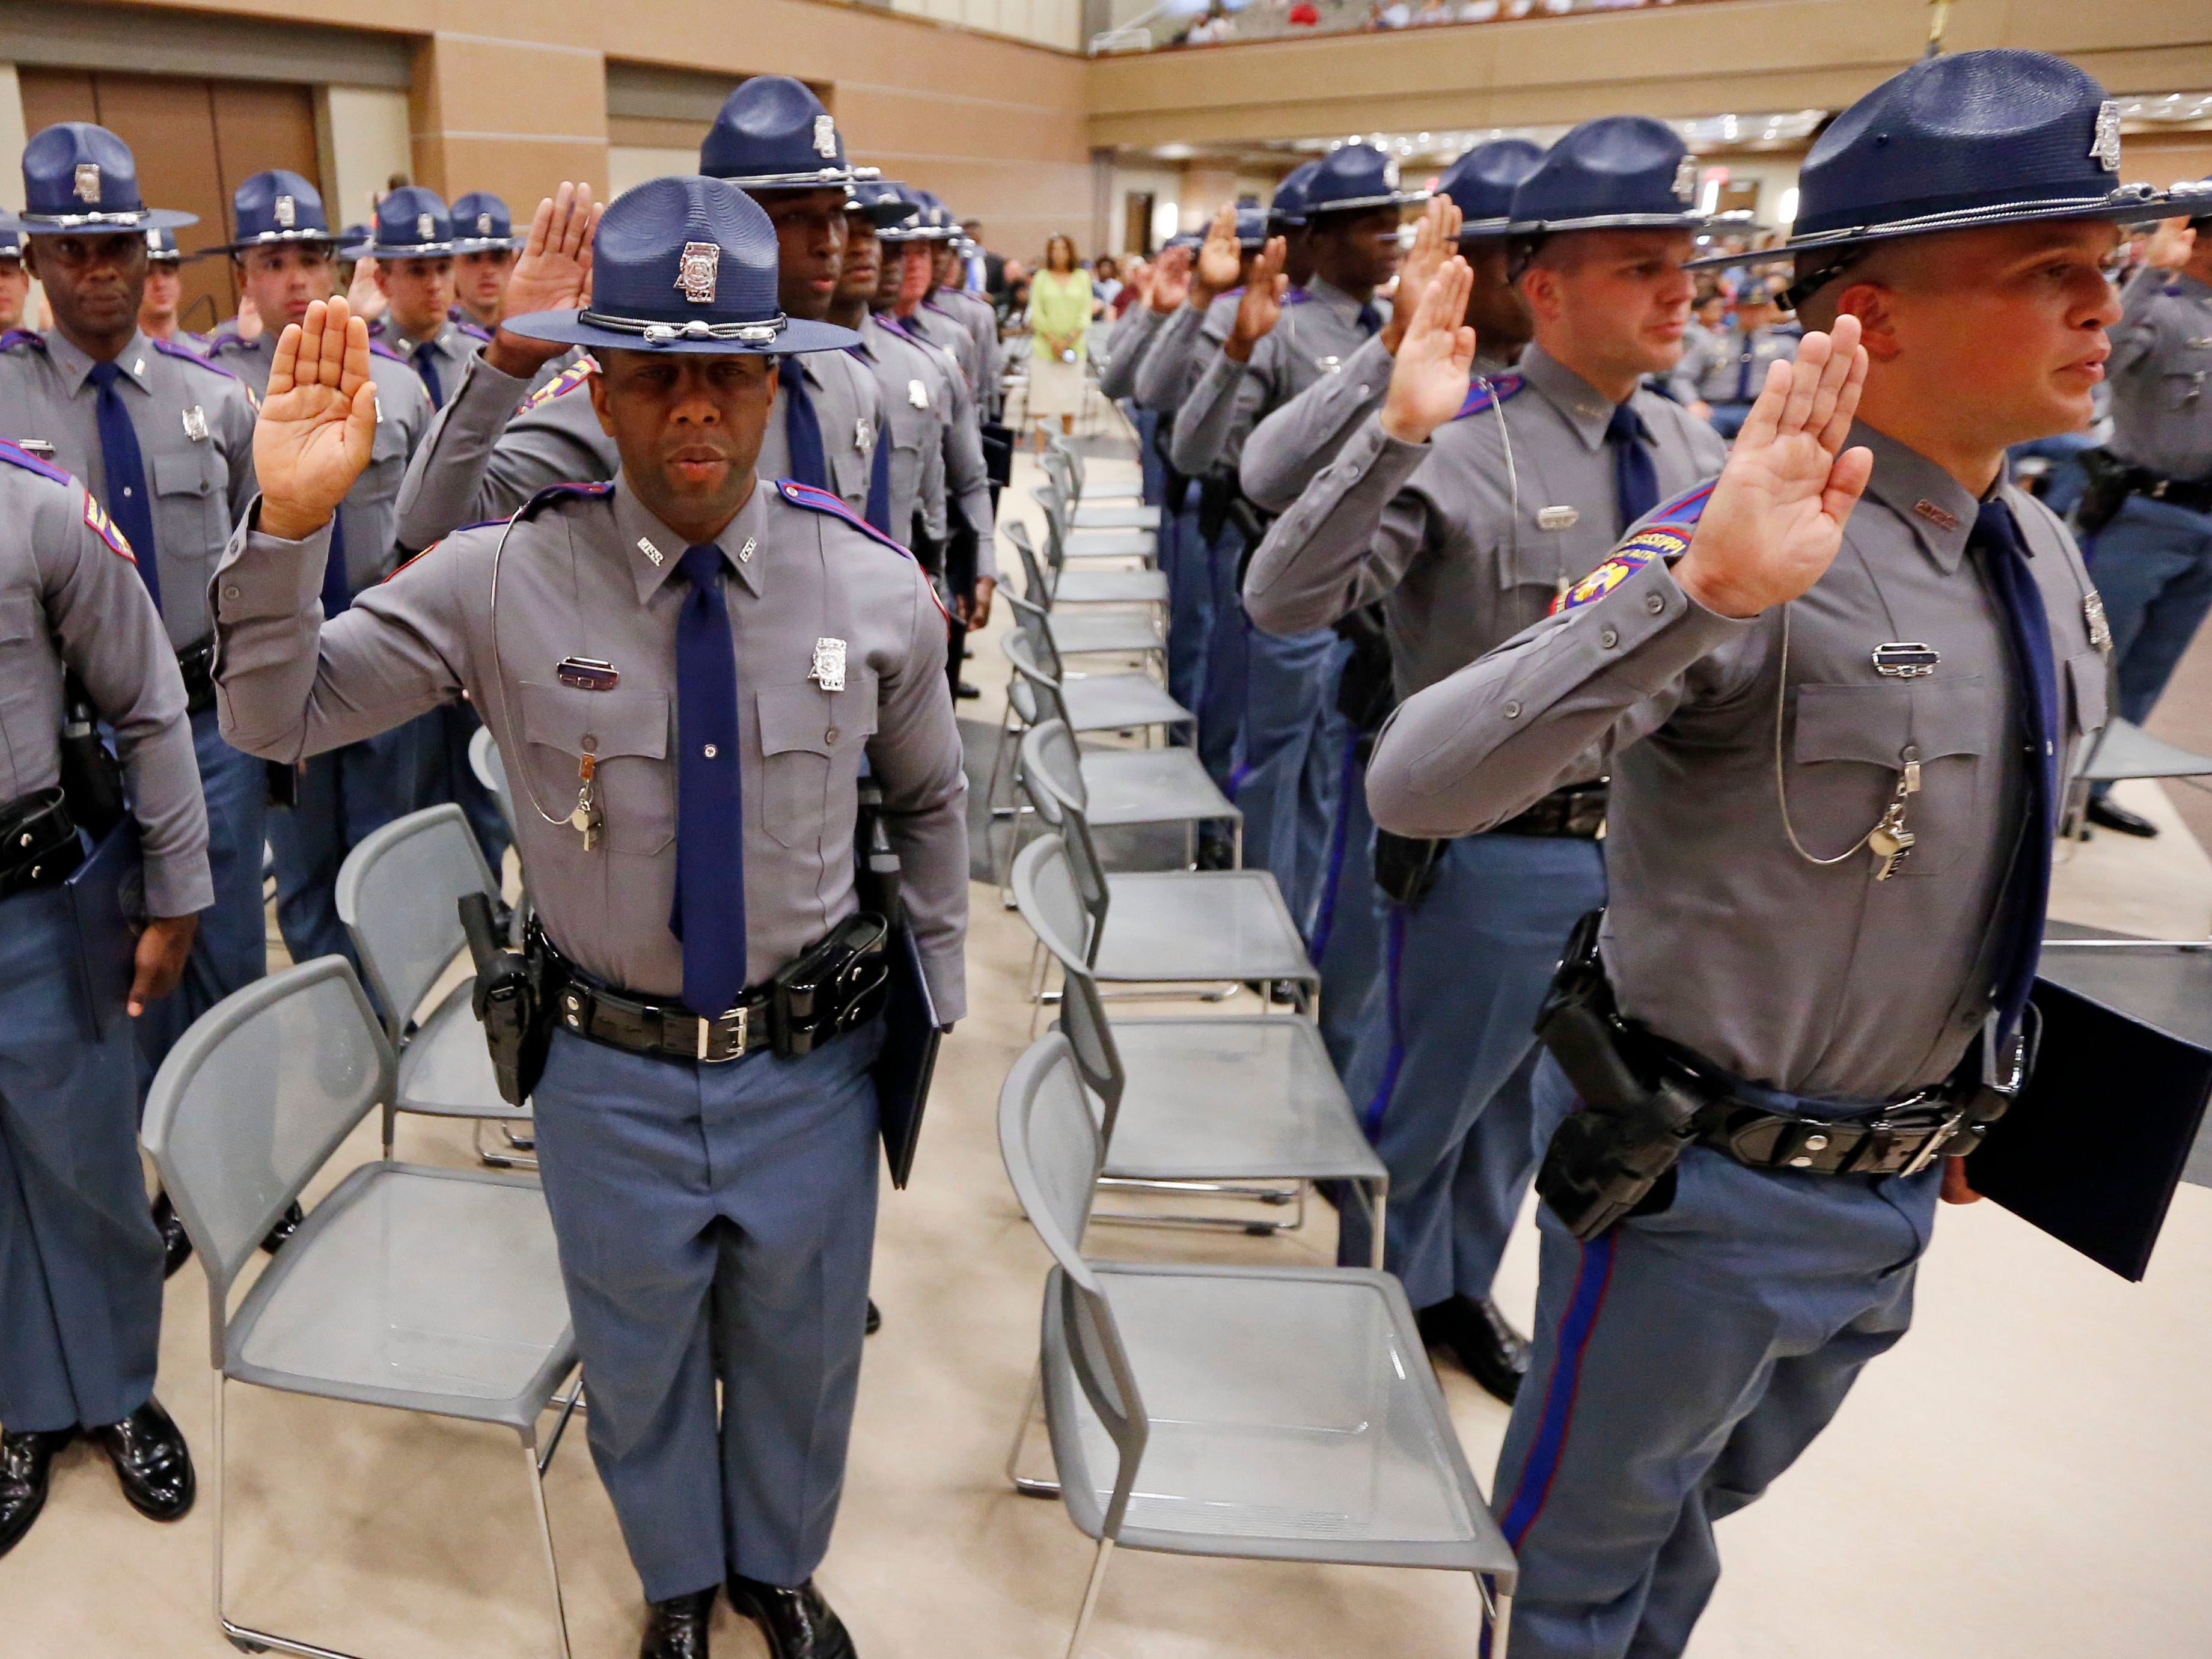 Members of the Mississippi Highway Safety Patrol Cadet Class 63 recite their oath of office in the Clyde Muse Center in Pearl, Miss., as they were sworn in as the newest Patrol troopers, Wednesday, May 1, 2019.